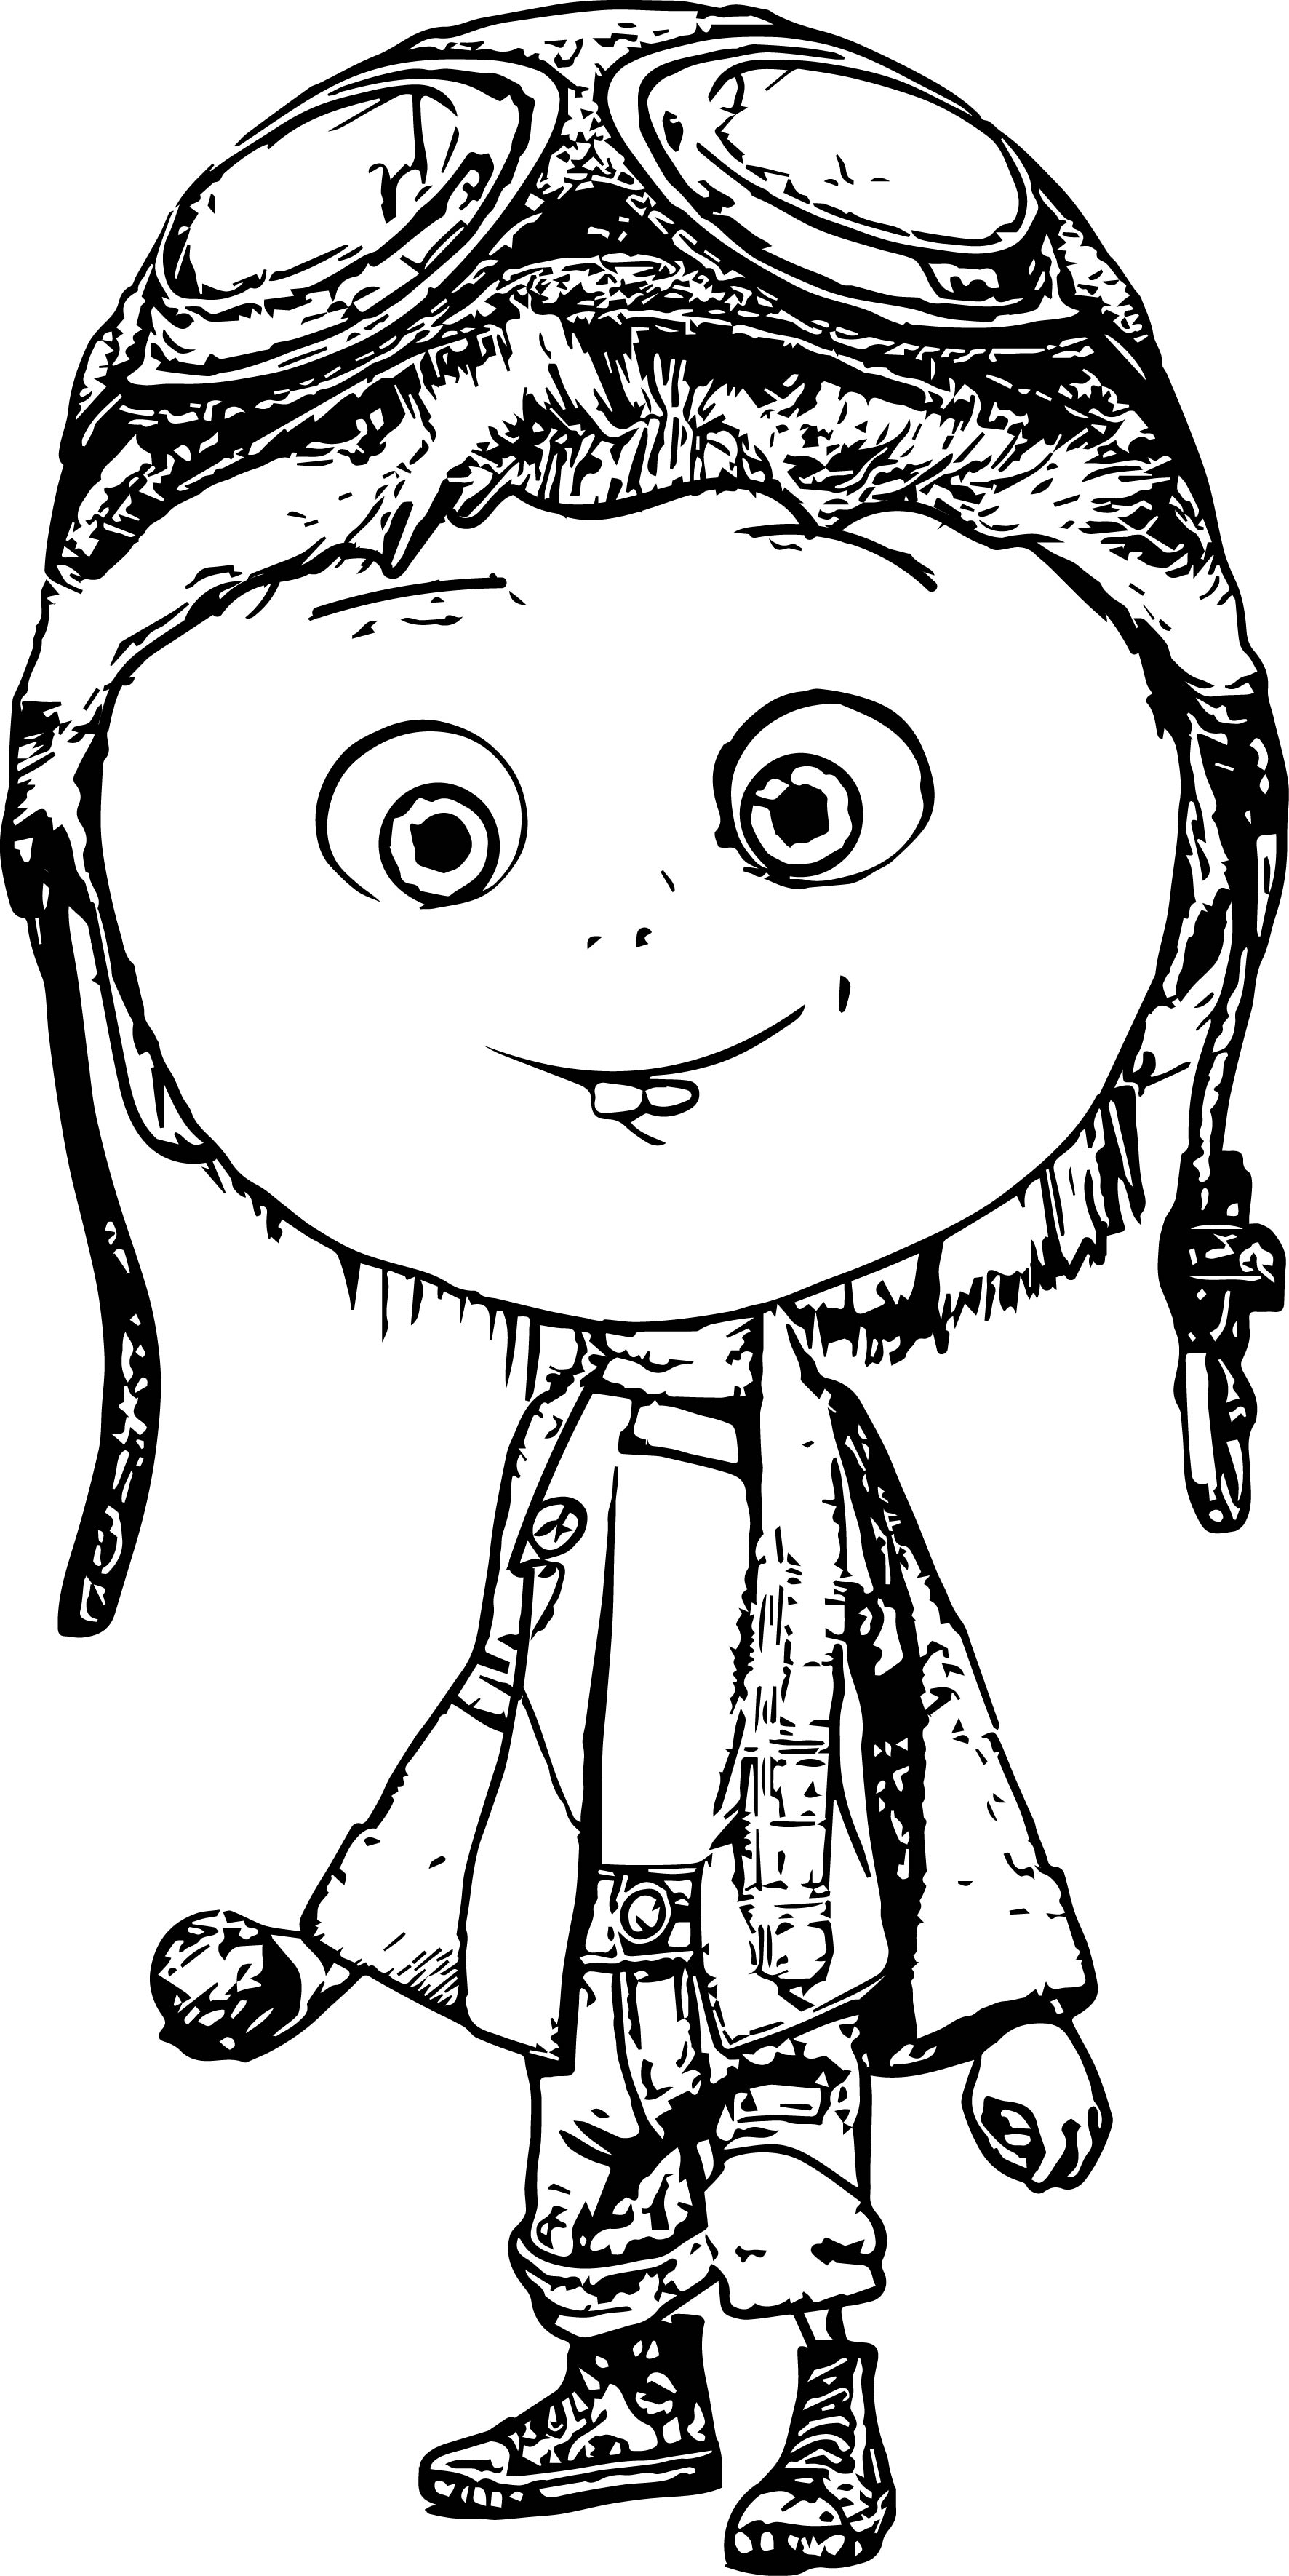 Amazing Child Pilot Sketch Coloring Page